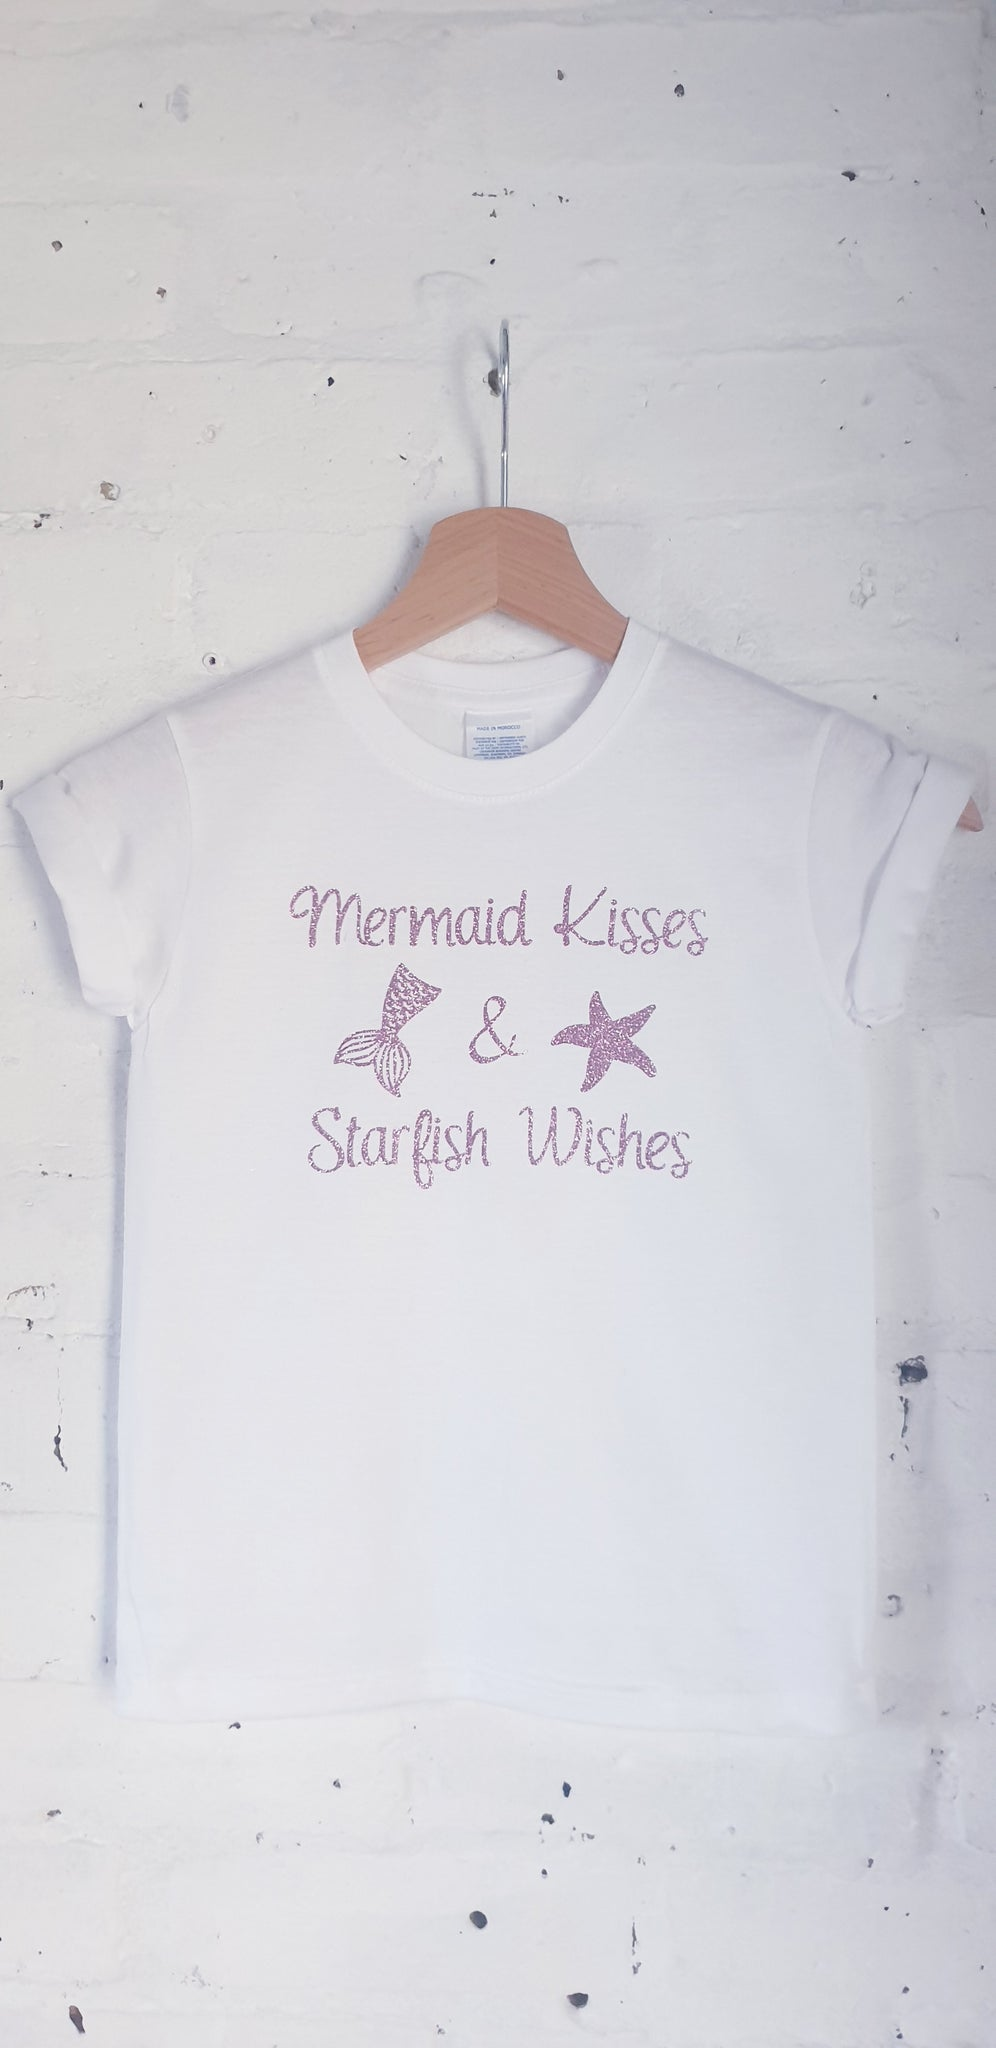 Mermaid Kisses & Starfish Wishes Tshirt